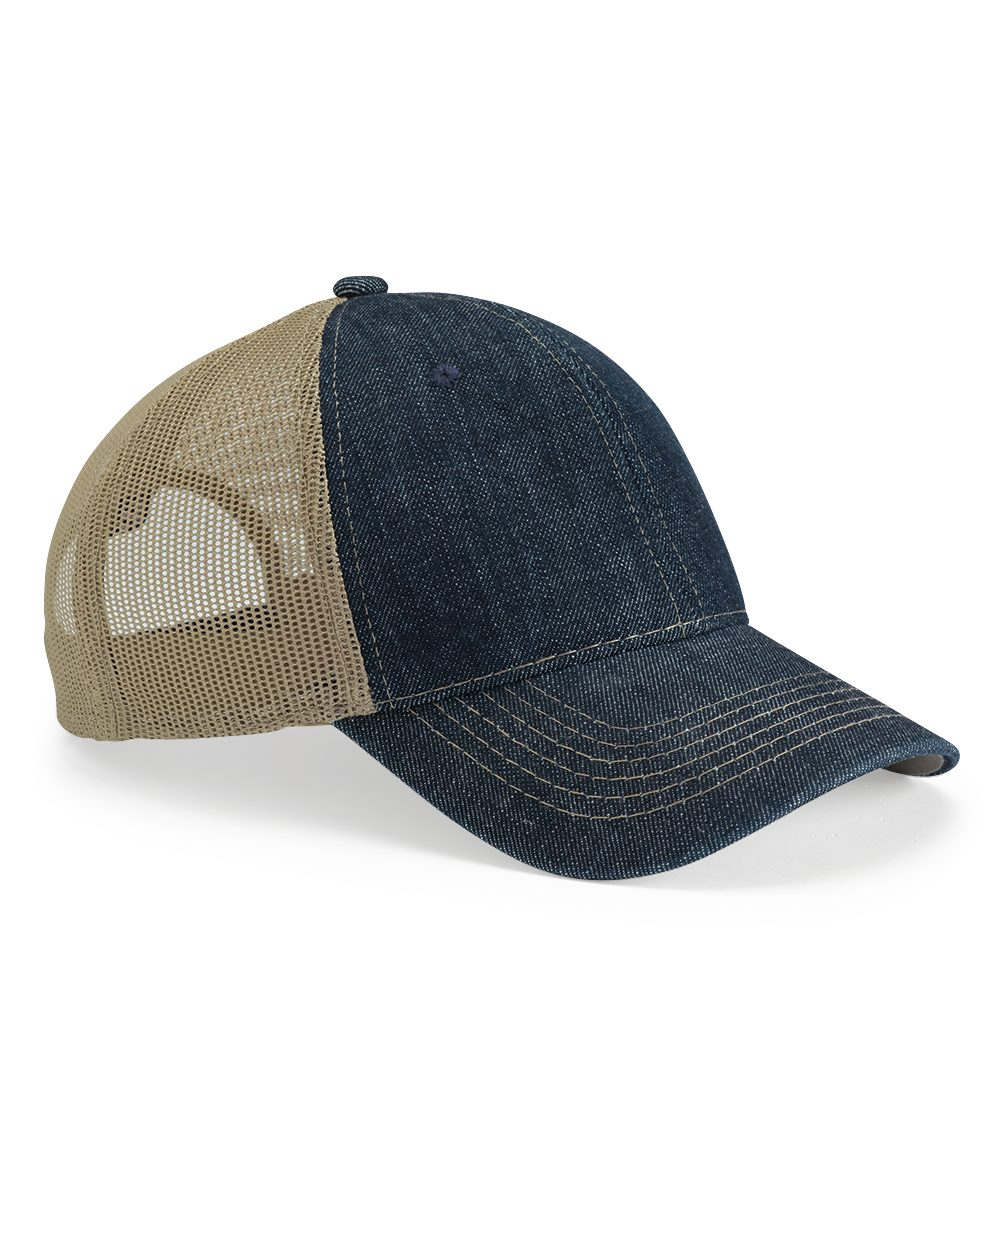 Outdoor Cap DN200M - Denim Mesh Back Cap